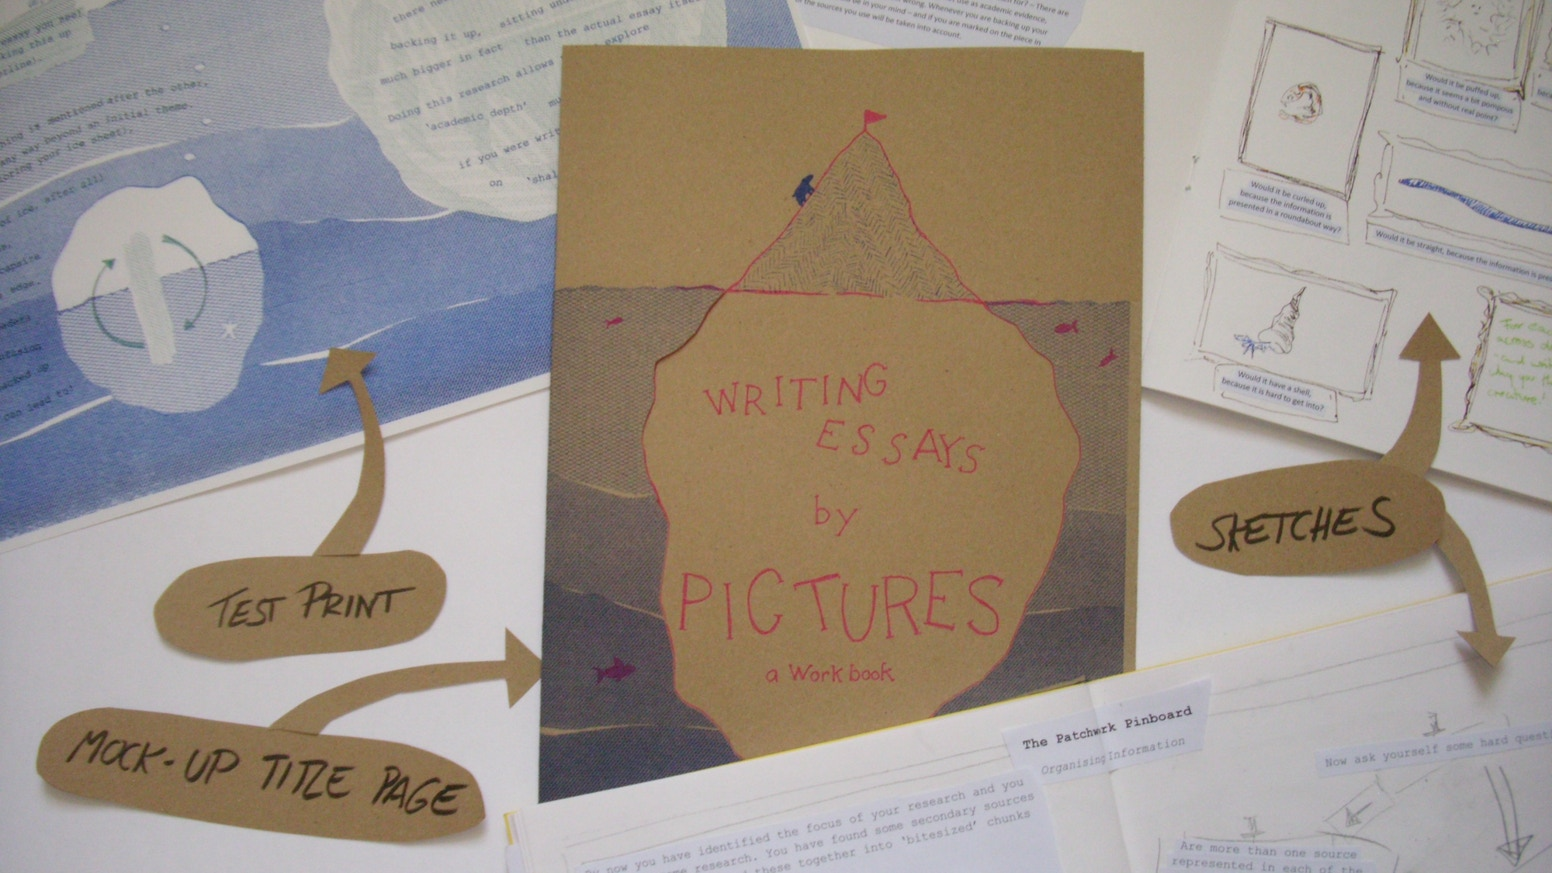 writing essays by pictures by alke groppel wegener kickstarter a fun and colourful workbook for students explaining the basics of academic research and essay writing